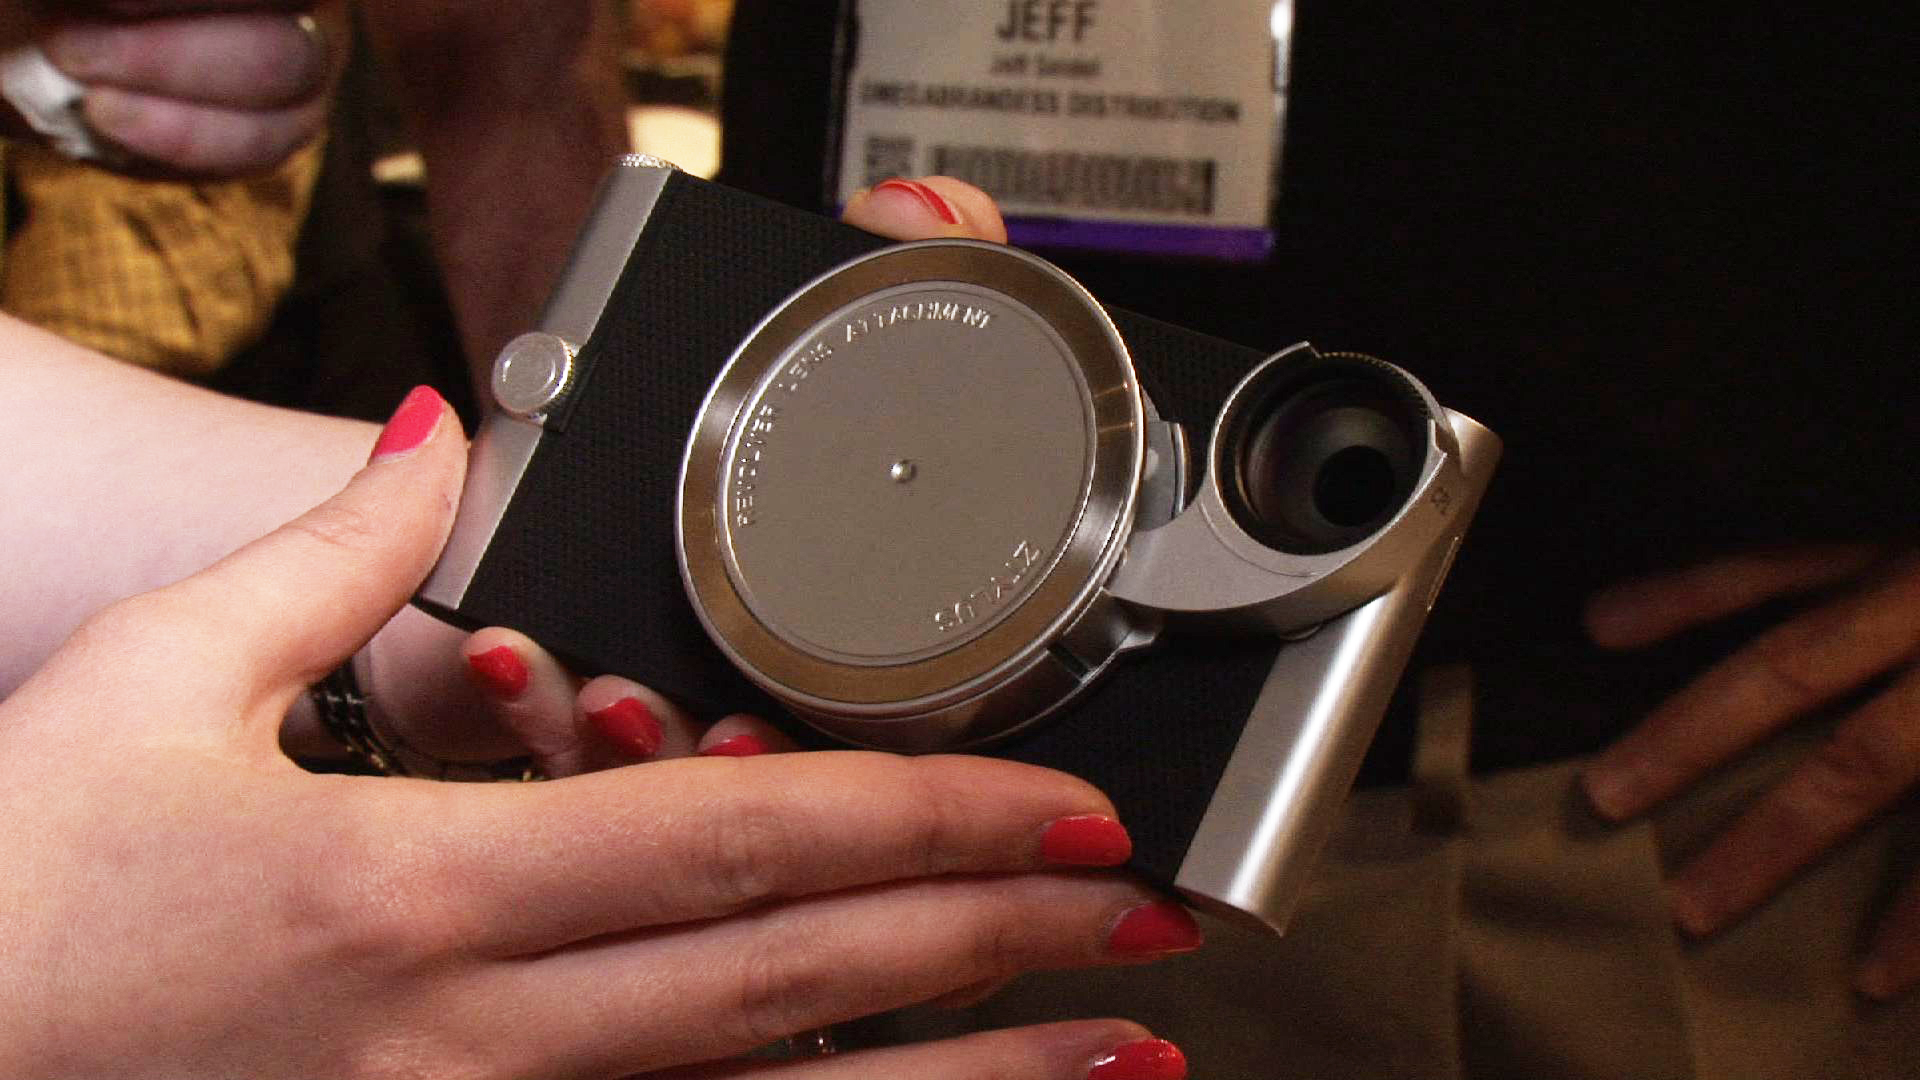 Video: The Ztylus 4-in-1 lens case puts a new twist on smartphone photos